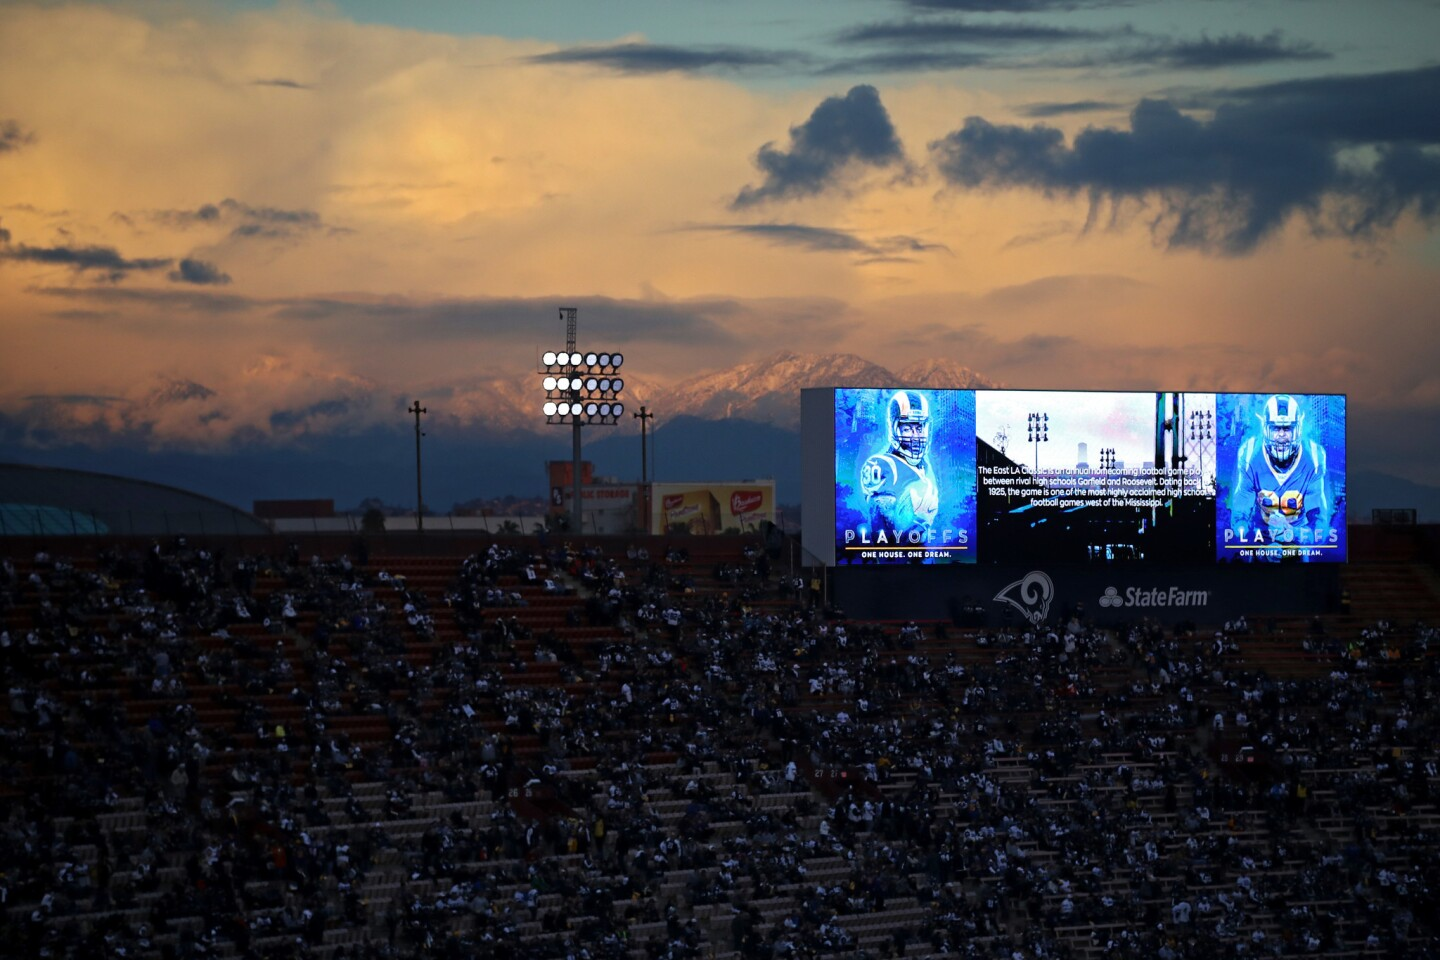 LOS ANGELES, CA - JANUARY 12: Mountains are seen from the stadium before the NFC Divisional Playoff game between the Los Angeles Rams and the Dallas Cowboys at Los Angeles Memorial Coliseum on January 12, 2019 in Los Angeles, California. (Photo by Sean M. Haffey/Getty Images) ** OUTS - ELSENT, FPG, CM - OUTS * NM, PH, VA if sourced by CT, LA or MoD **